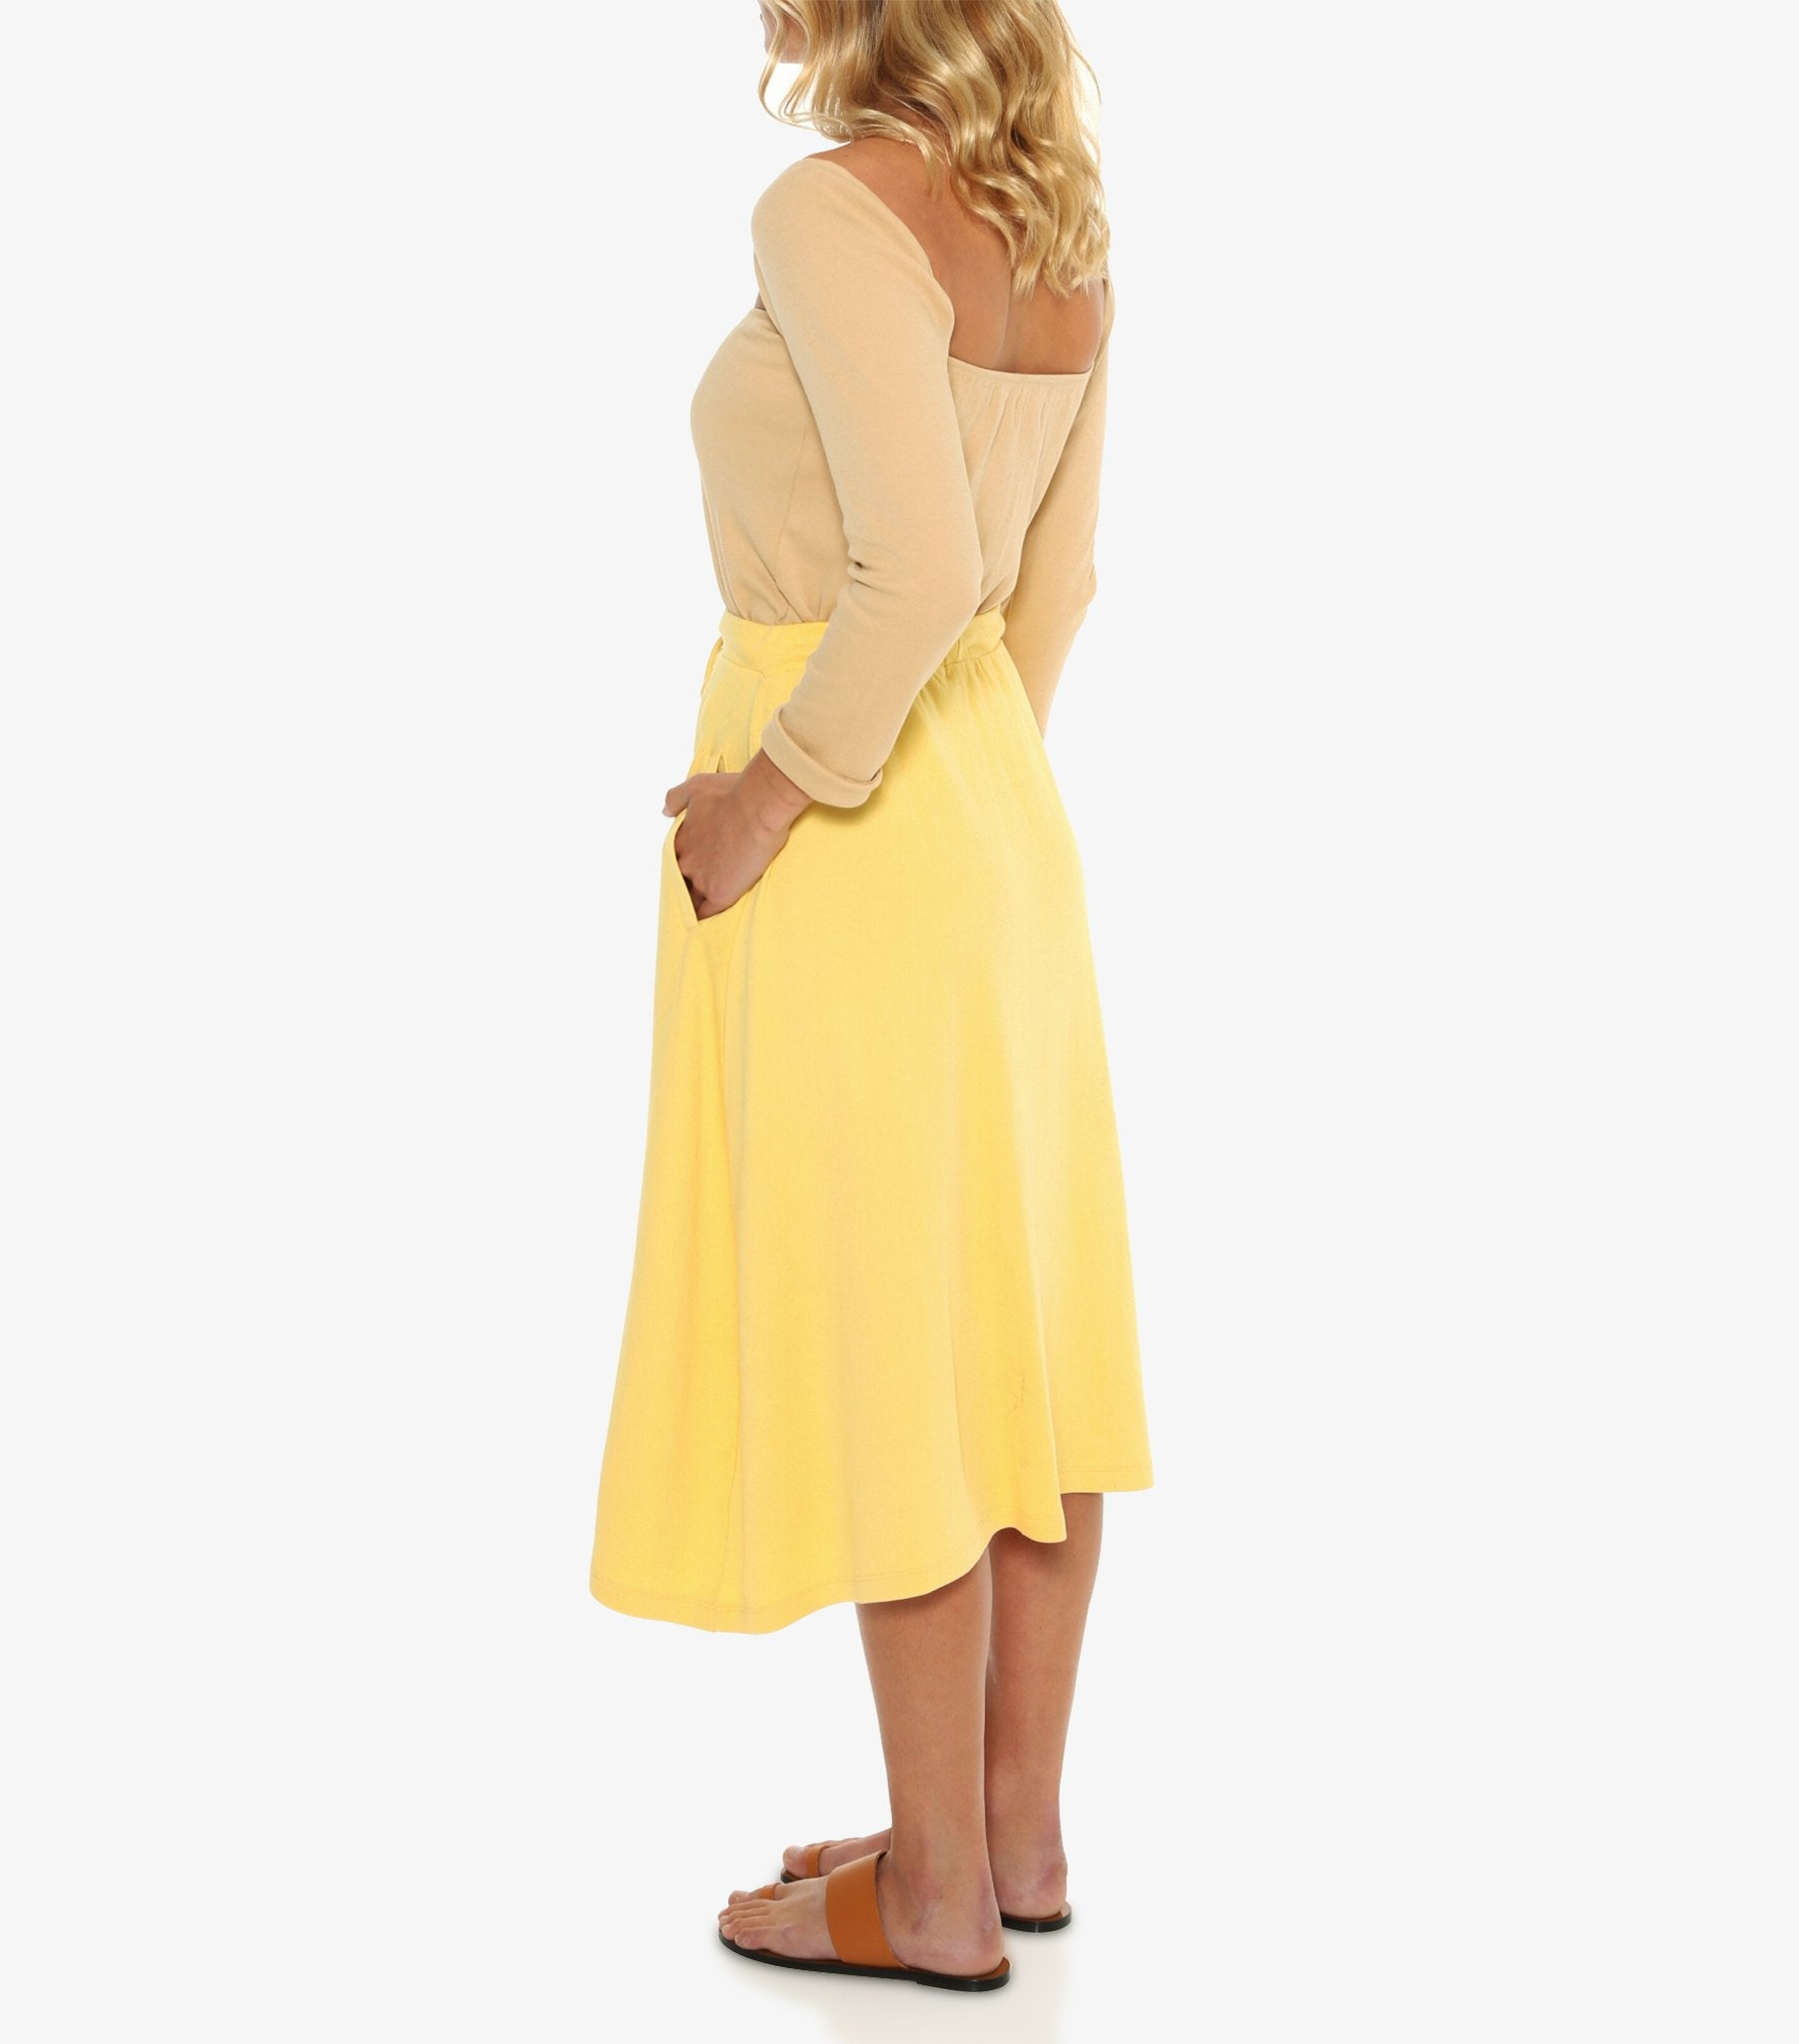 Jemimah Button Down Skirt - Aspen Gold